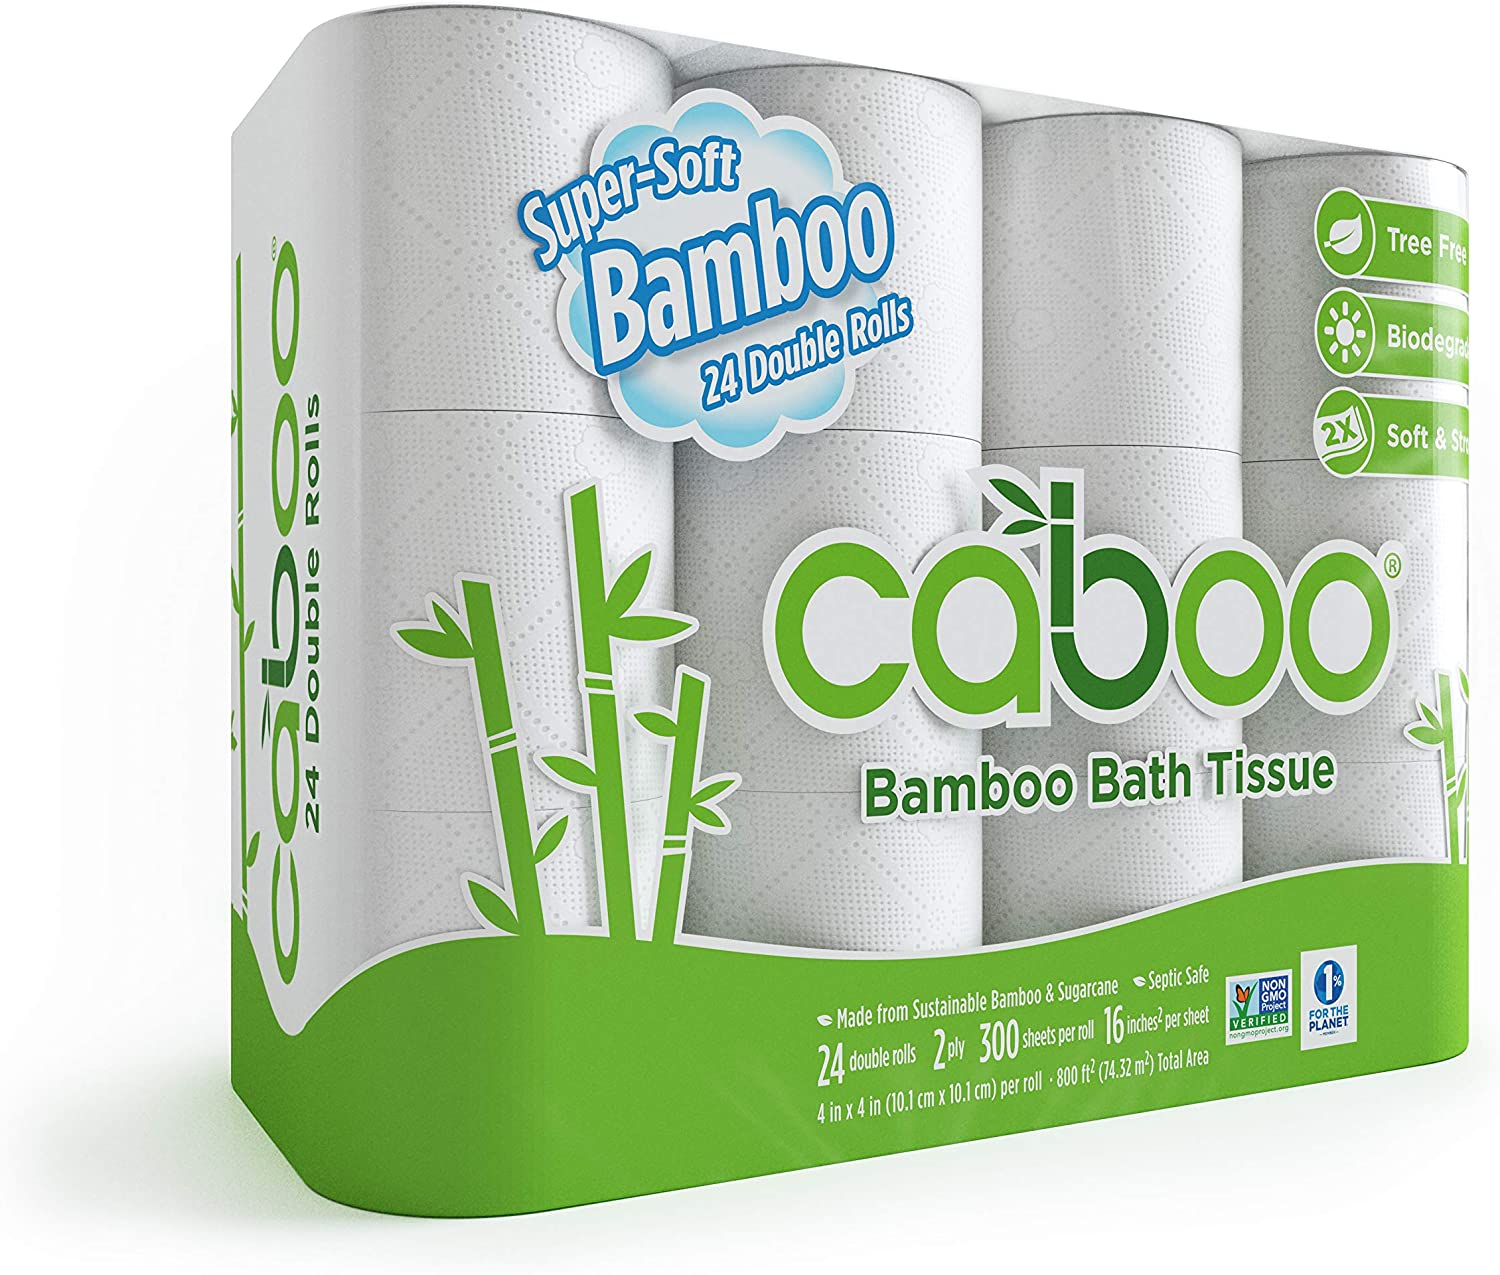 Caboo Tree Free Bamboo Toilet Paper